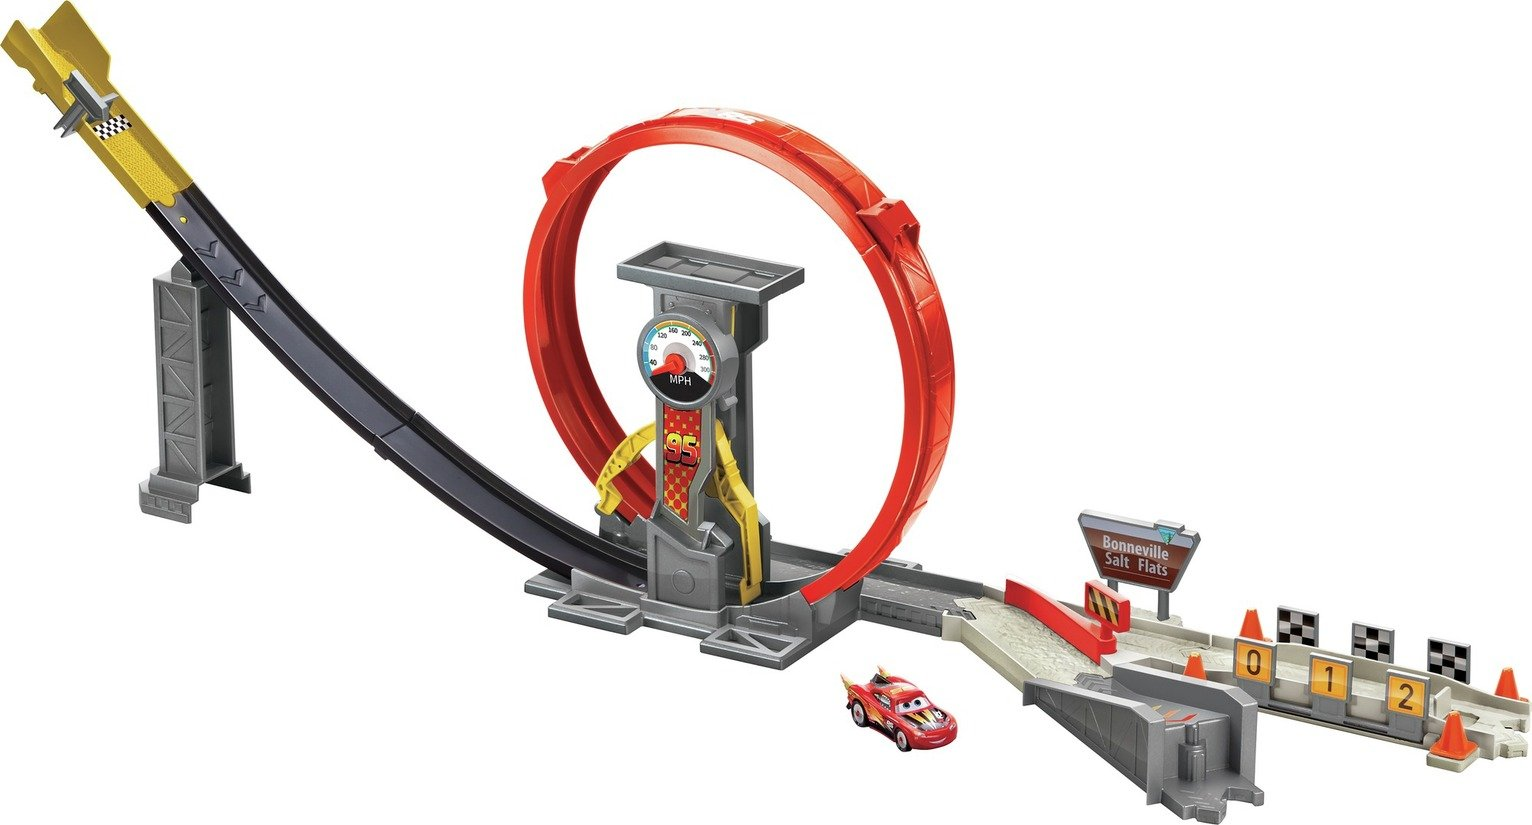 Disney Pixar Cars XRS Rocket Racing Trackset